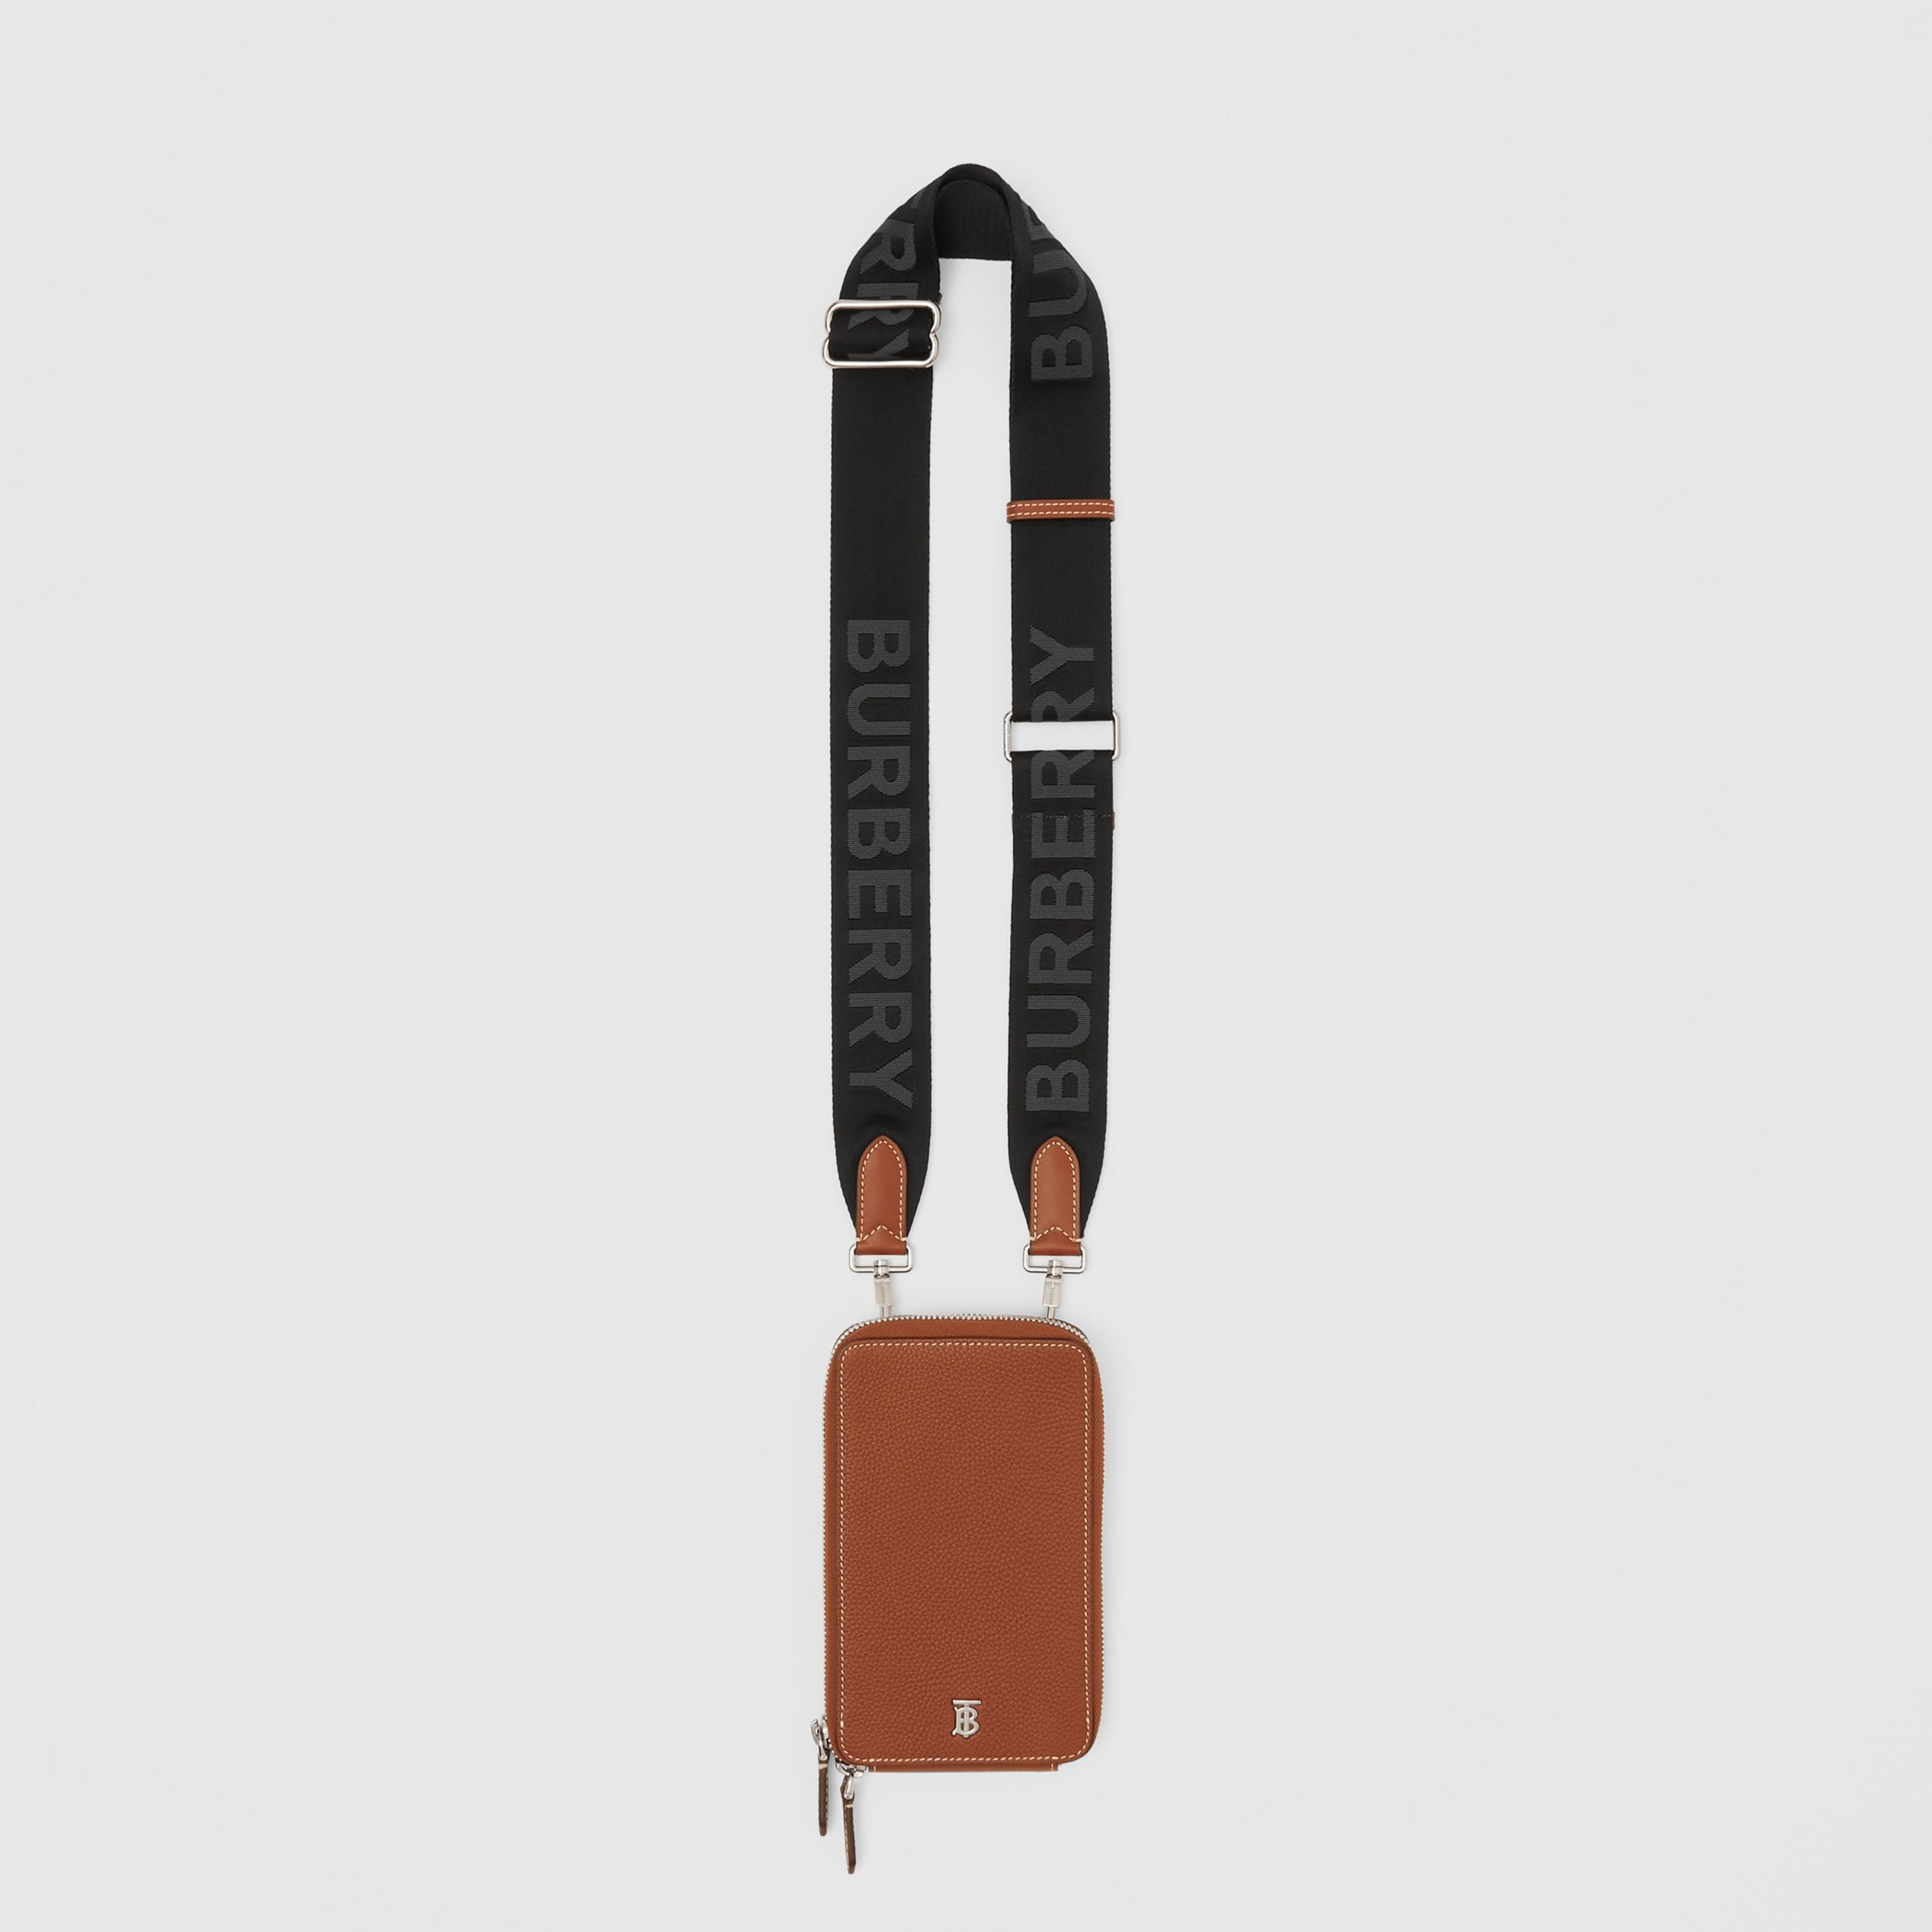 Grainy Leather Phone Case with Detachable Strap in Tan - Men | Burberry - 1